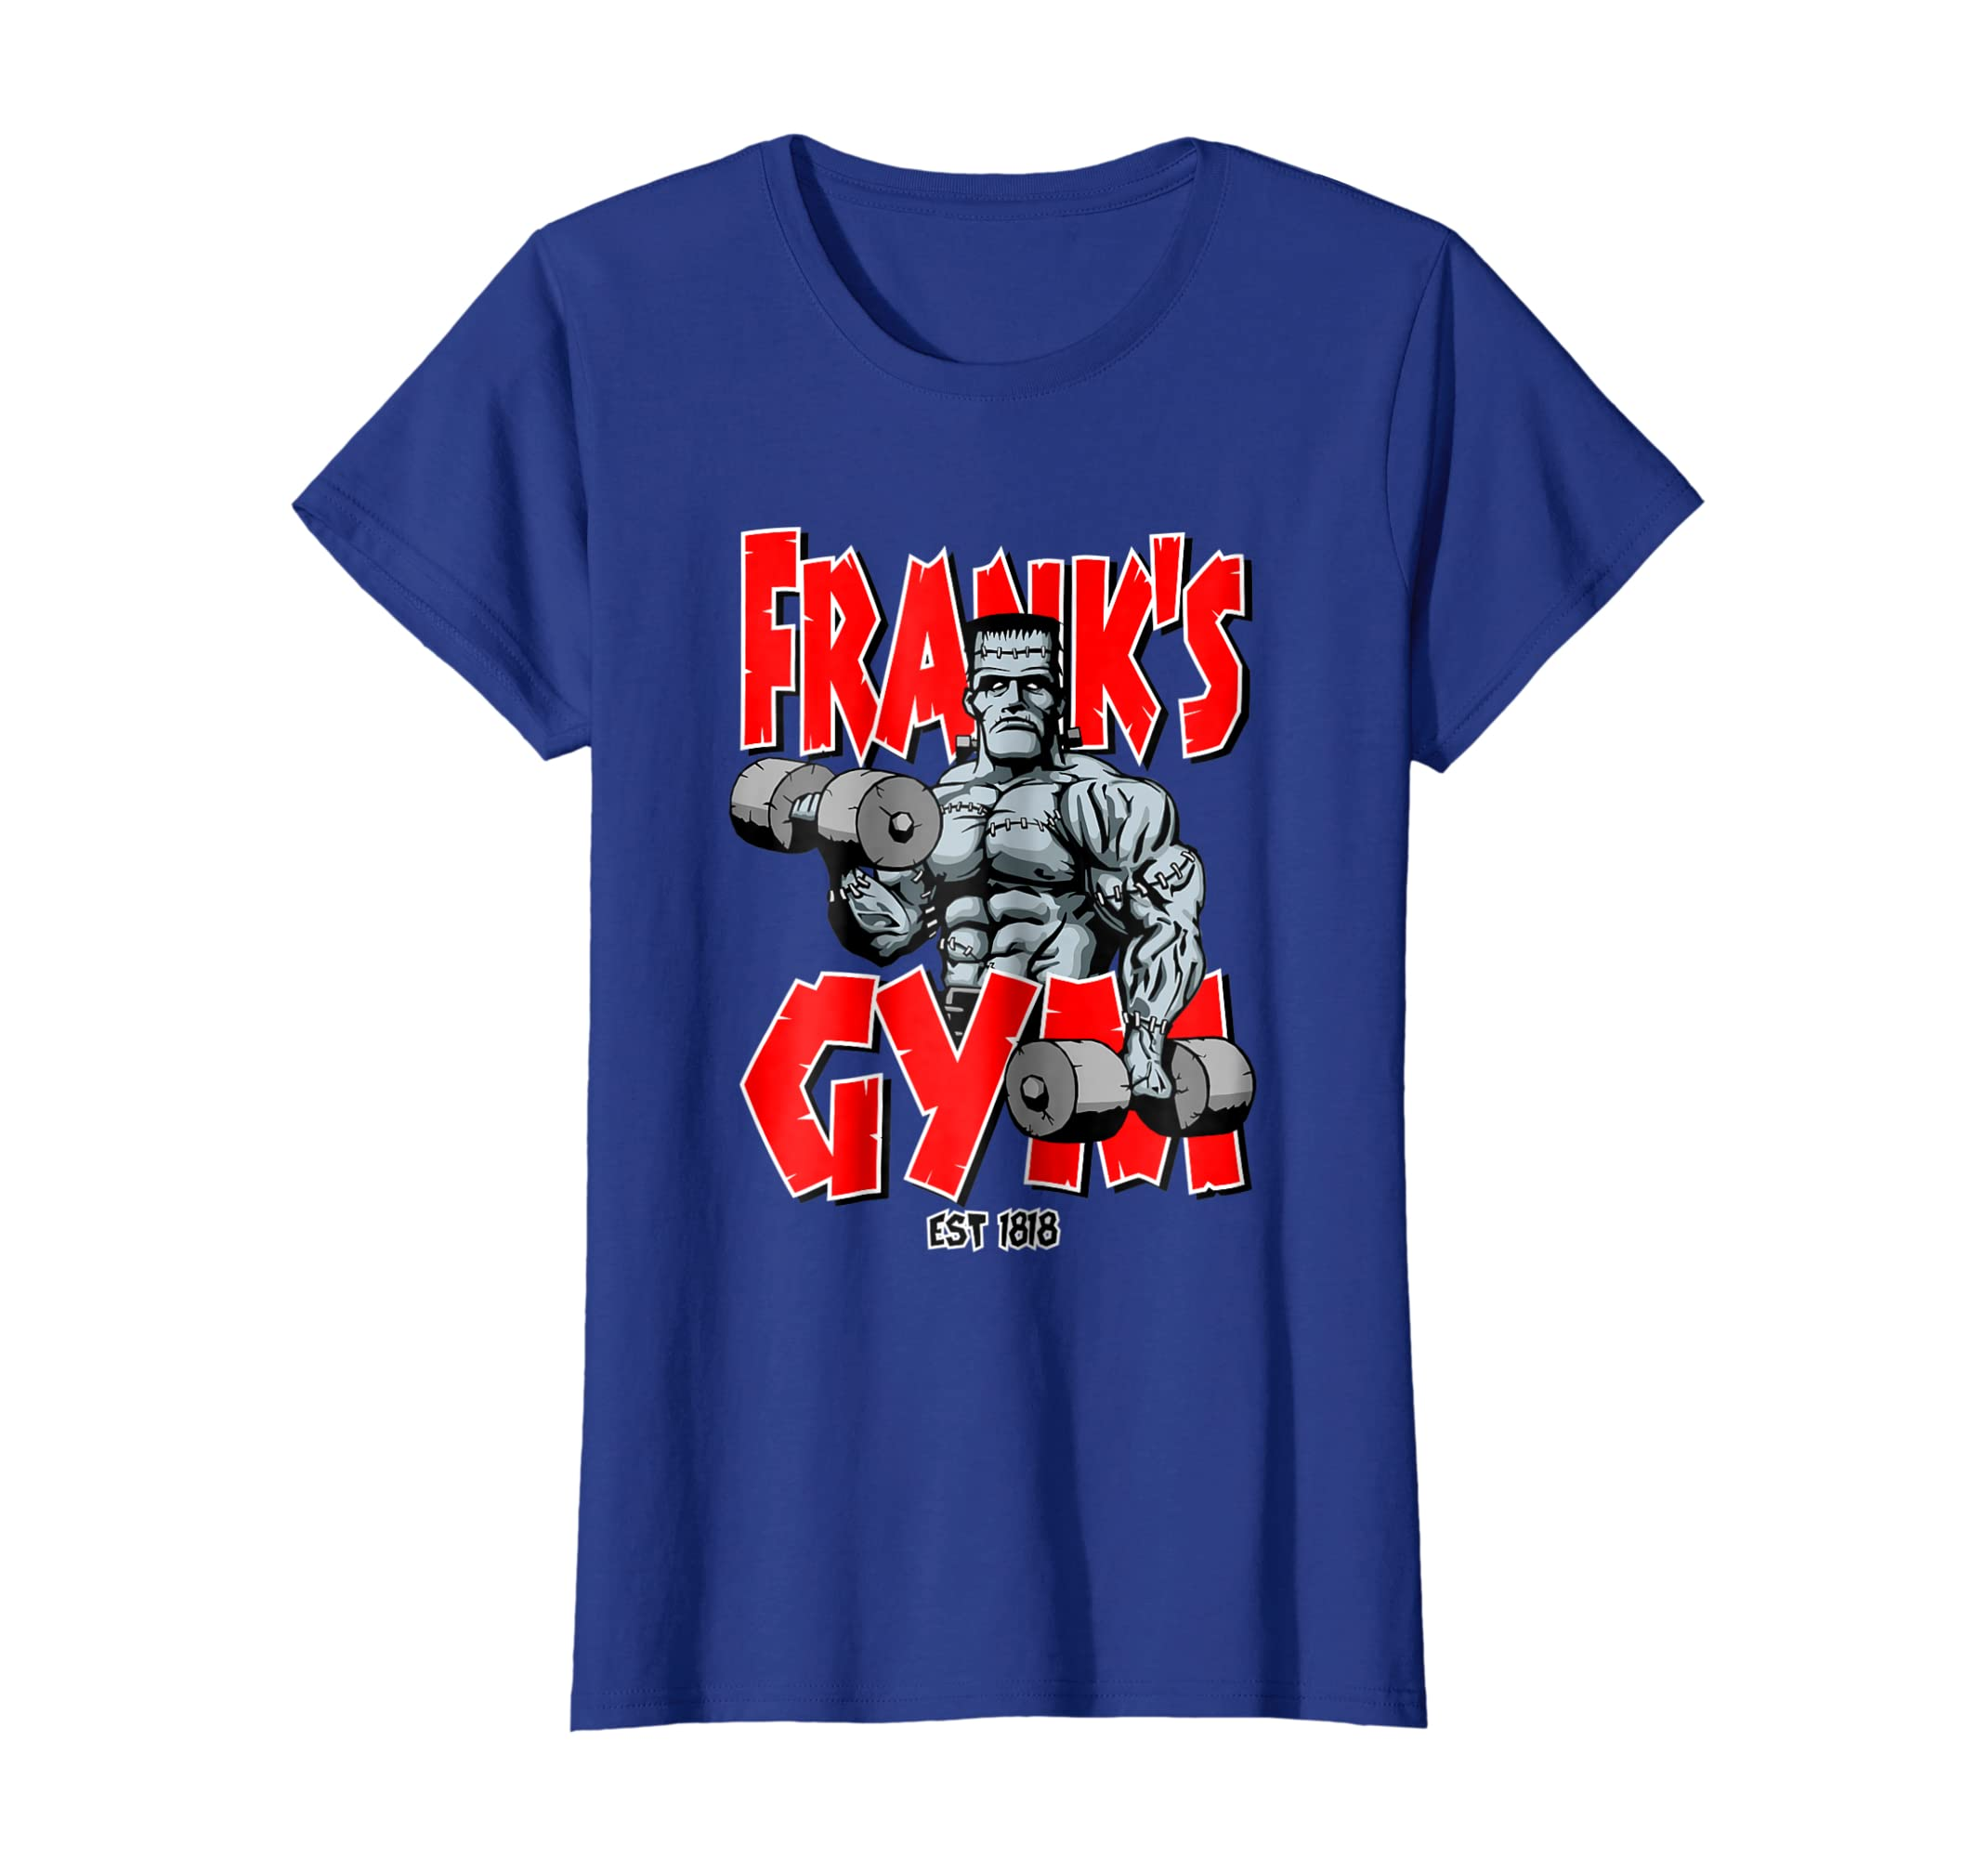 8a865be3a Amazon.com: Frankenstein Gym Funny Bodybuilding Fitness Workout T-shirt:  Clothing